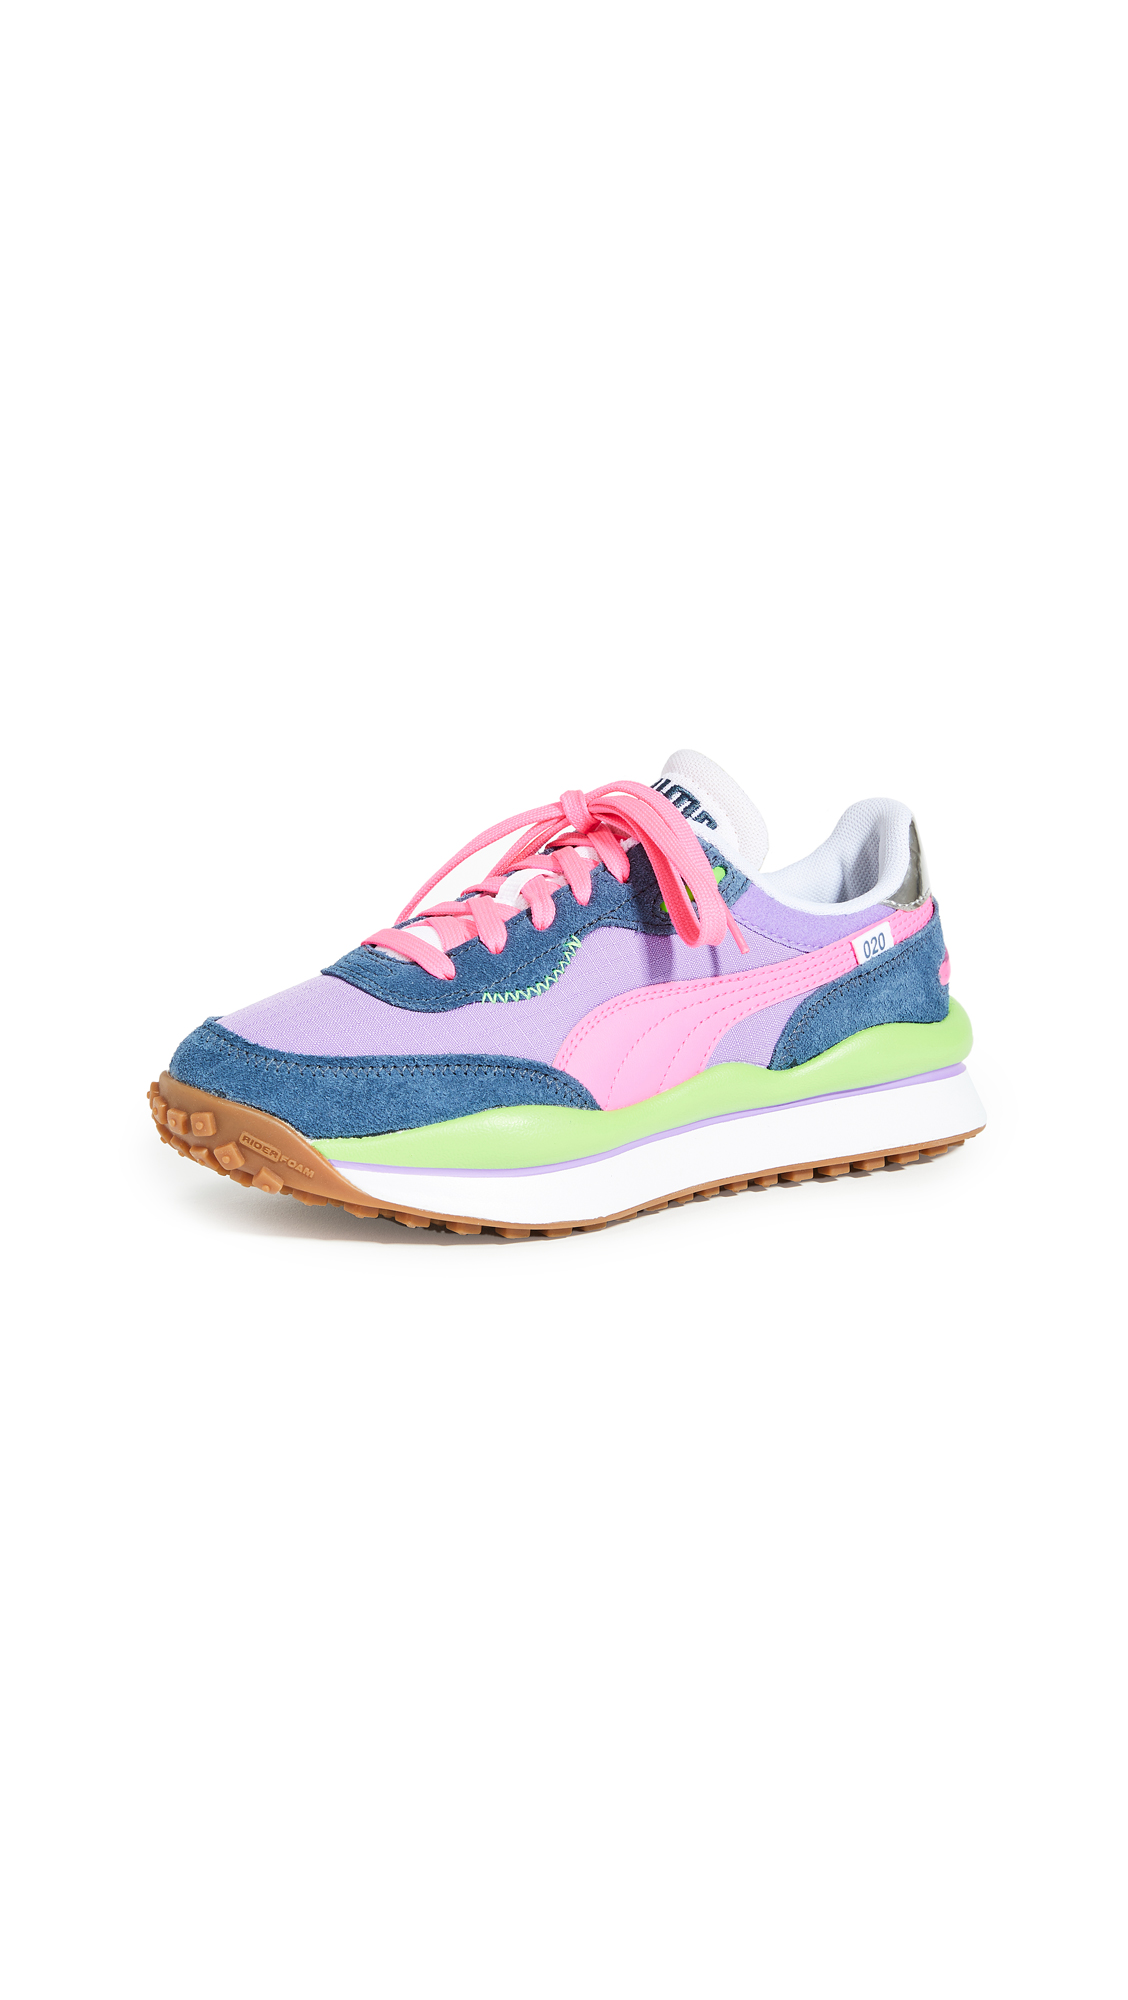 Buy PUMA Rider 020 Game On Sneakers online, shop PUMA